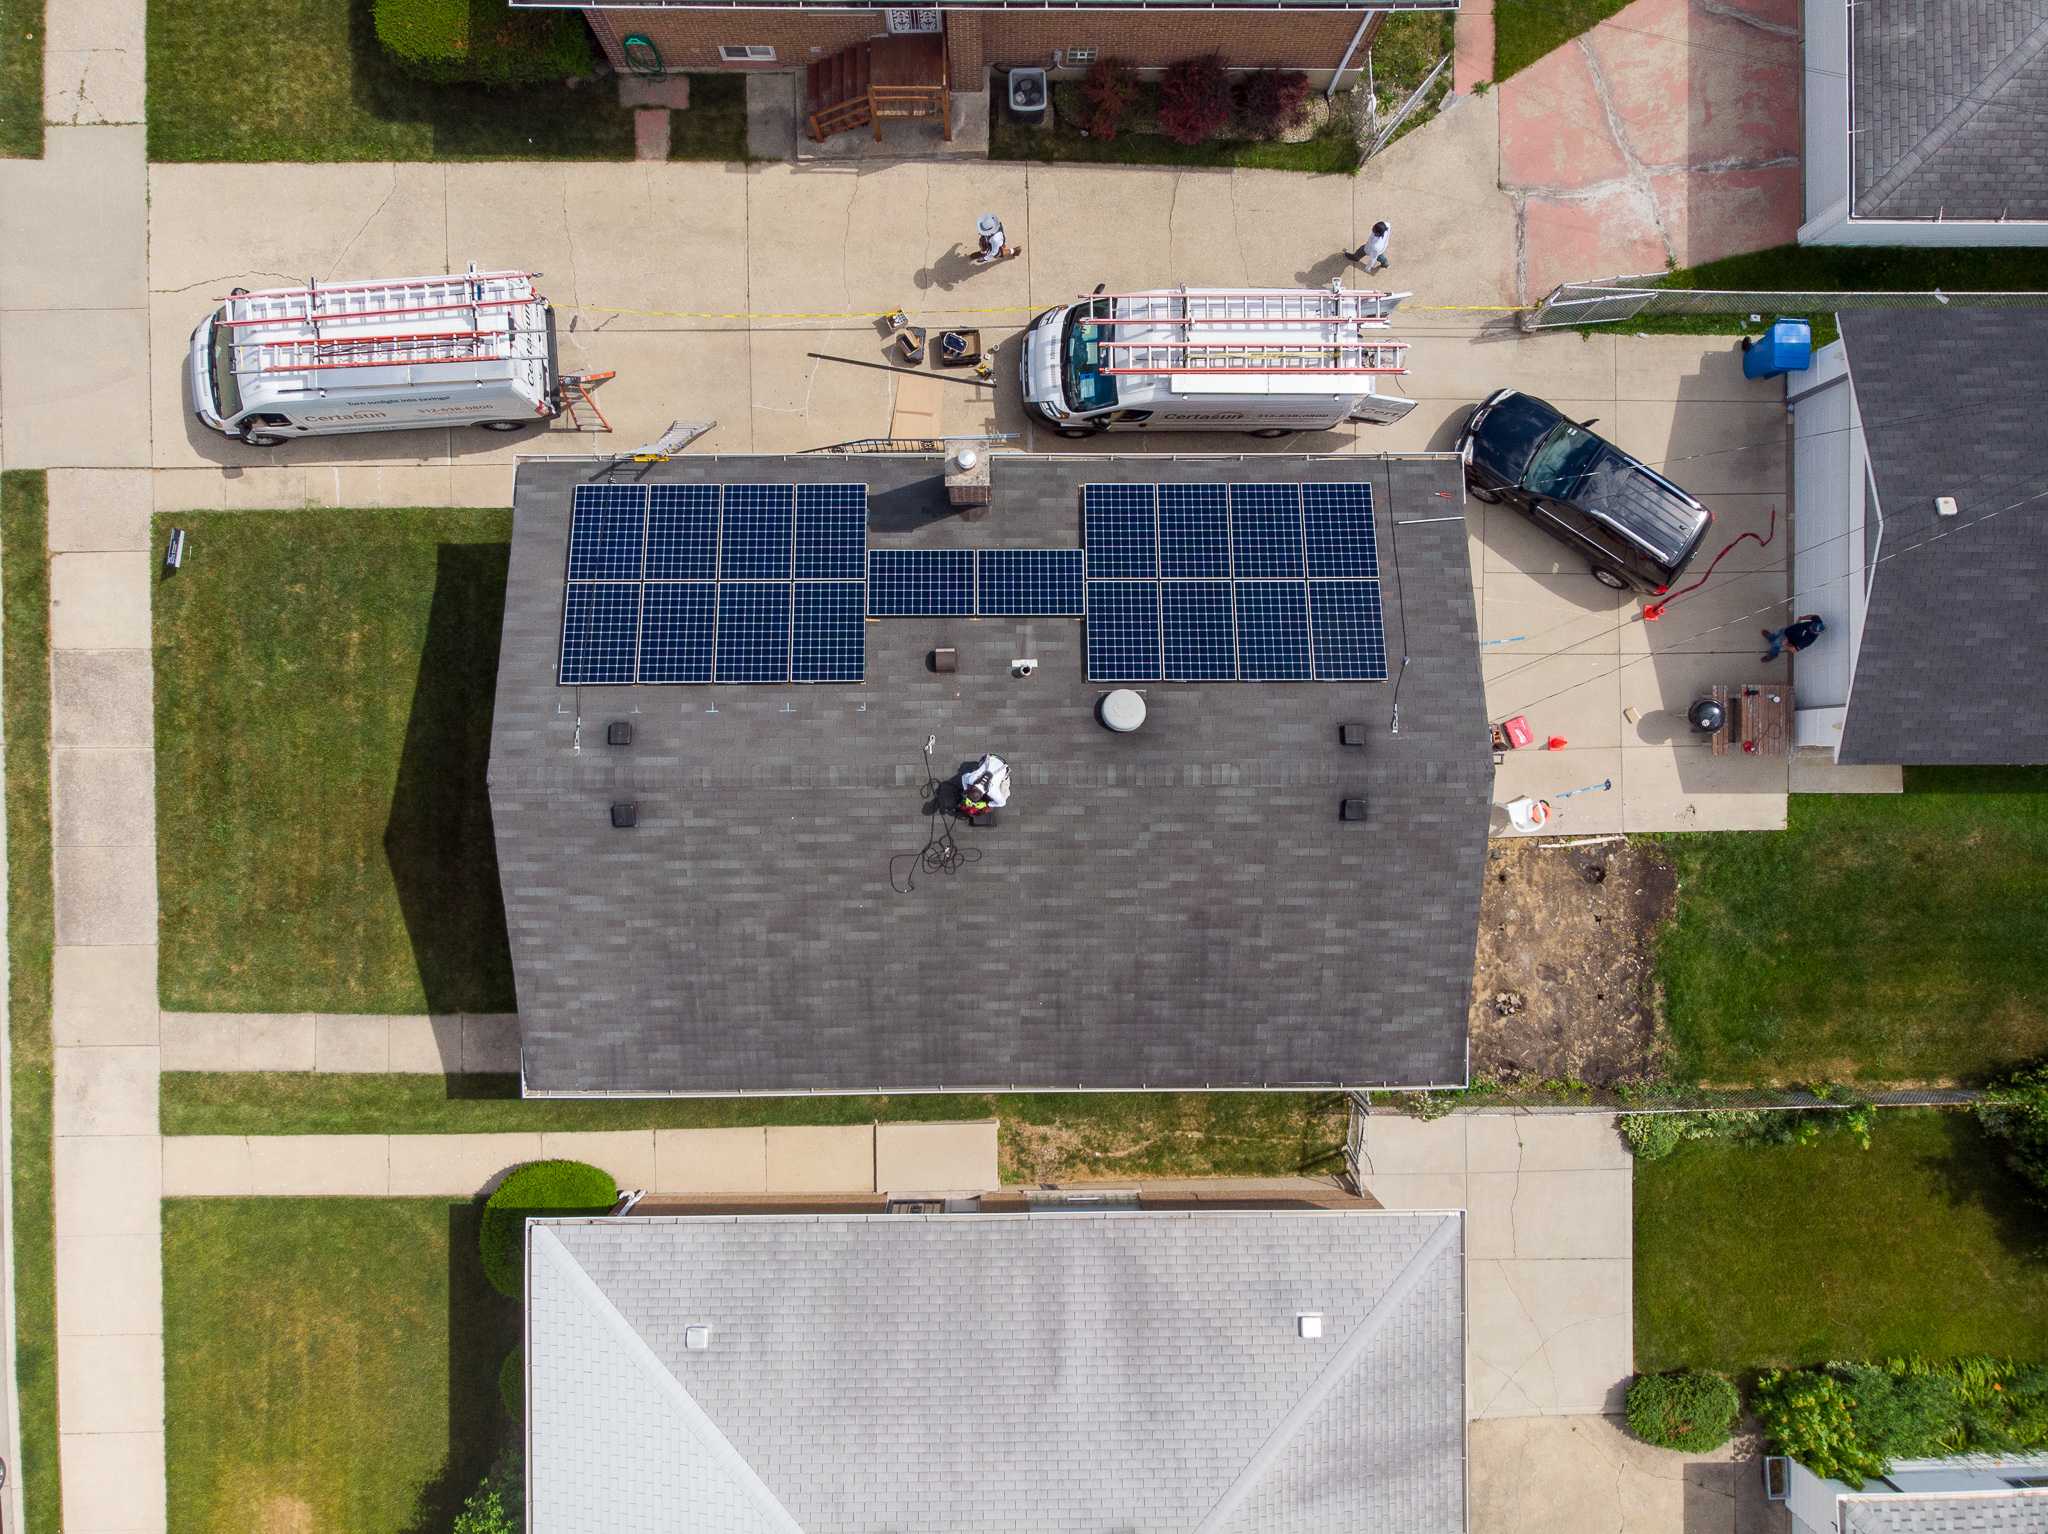 ICC Revives Popular Solar Policy for Ameren Illinois Customers